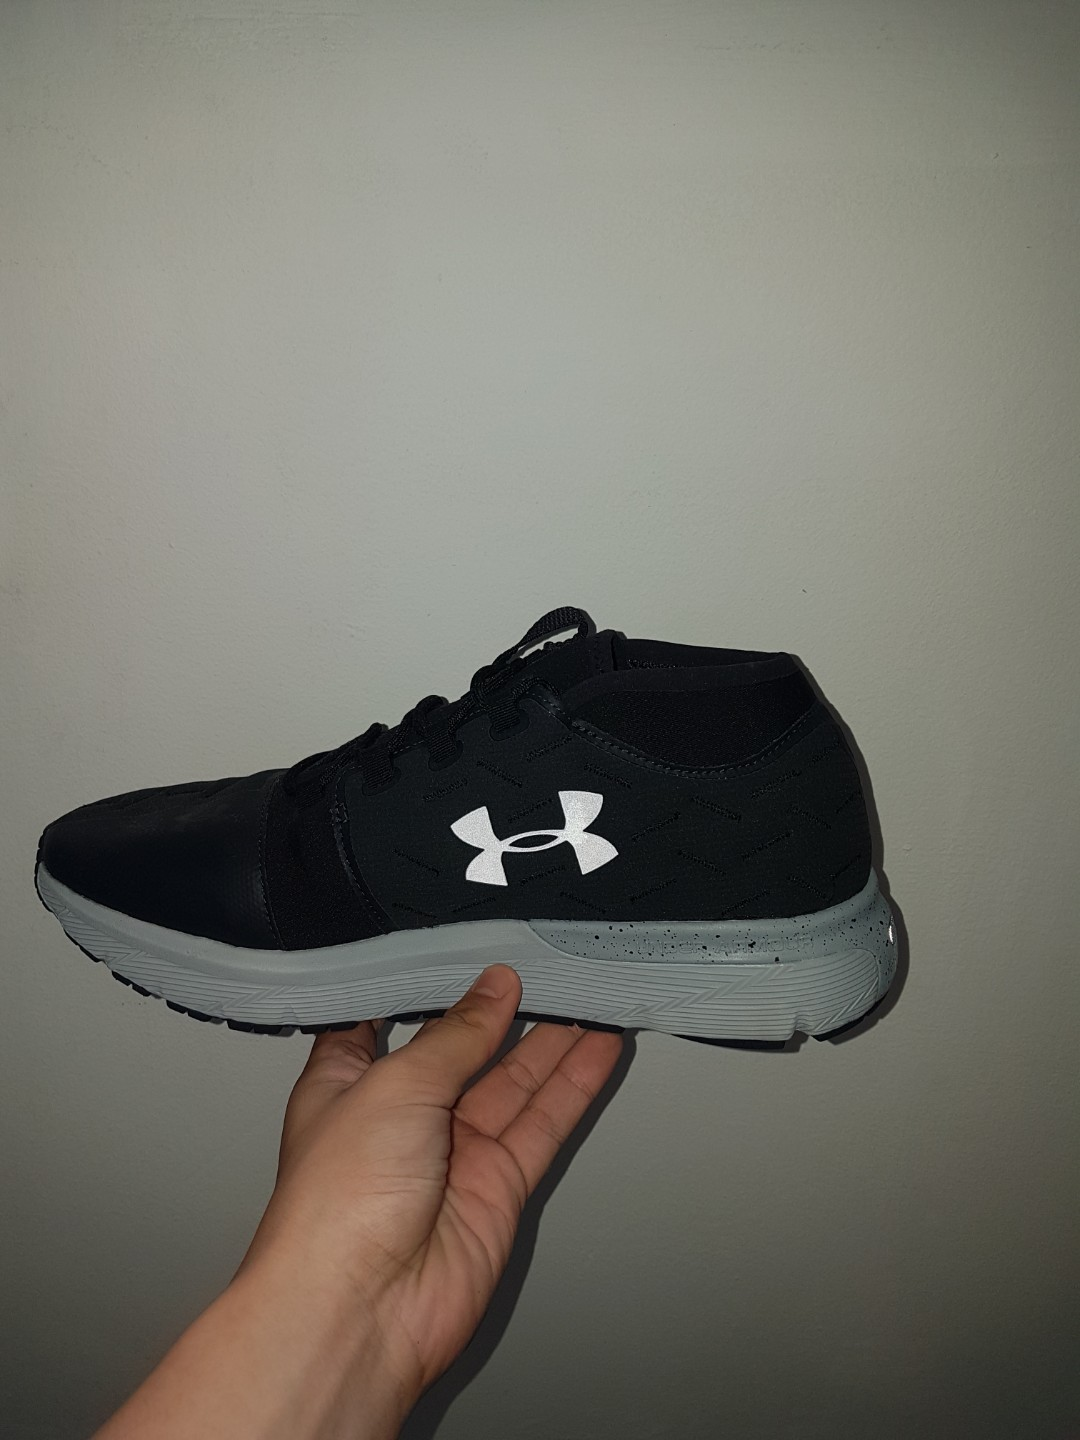 UNDER ARMOUR CHARGED REACTOR RUN, Men's